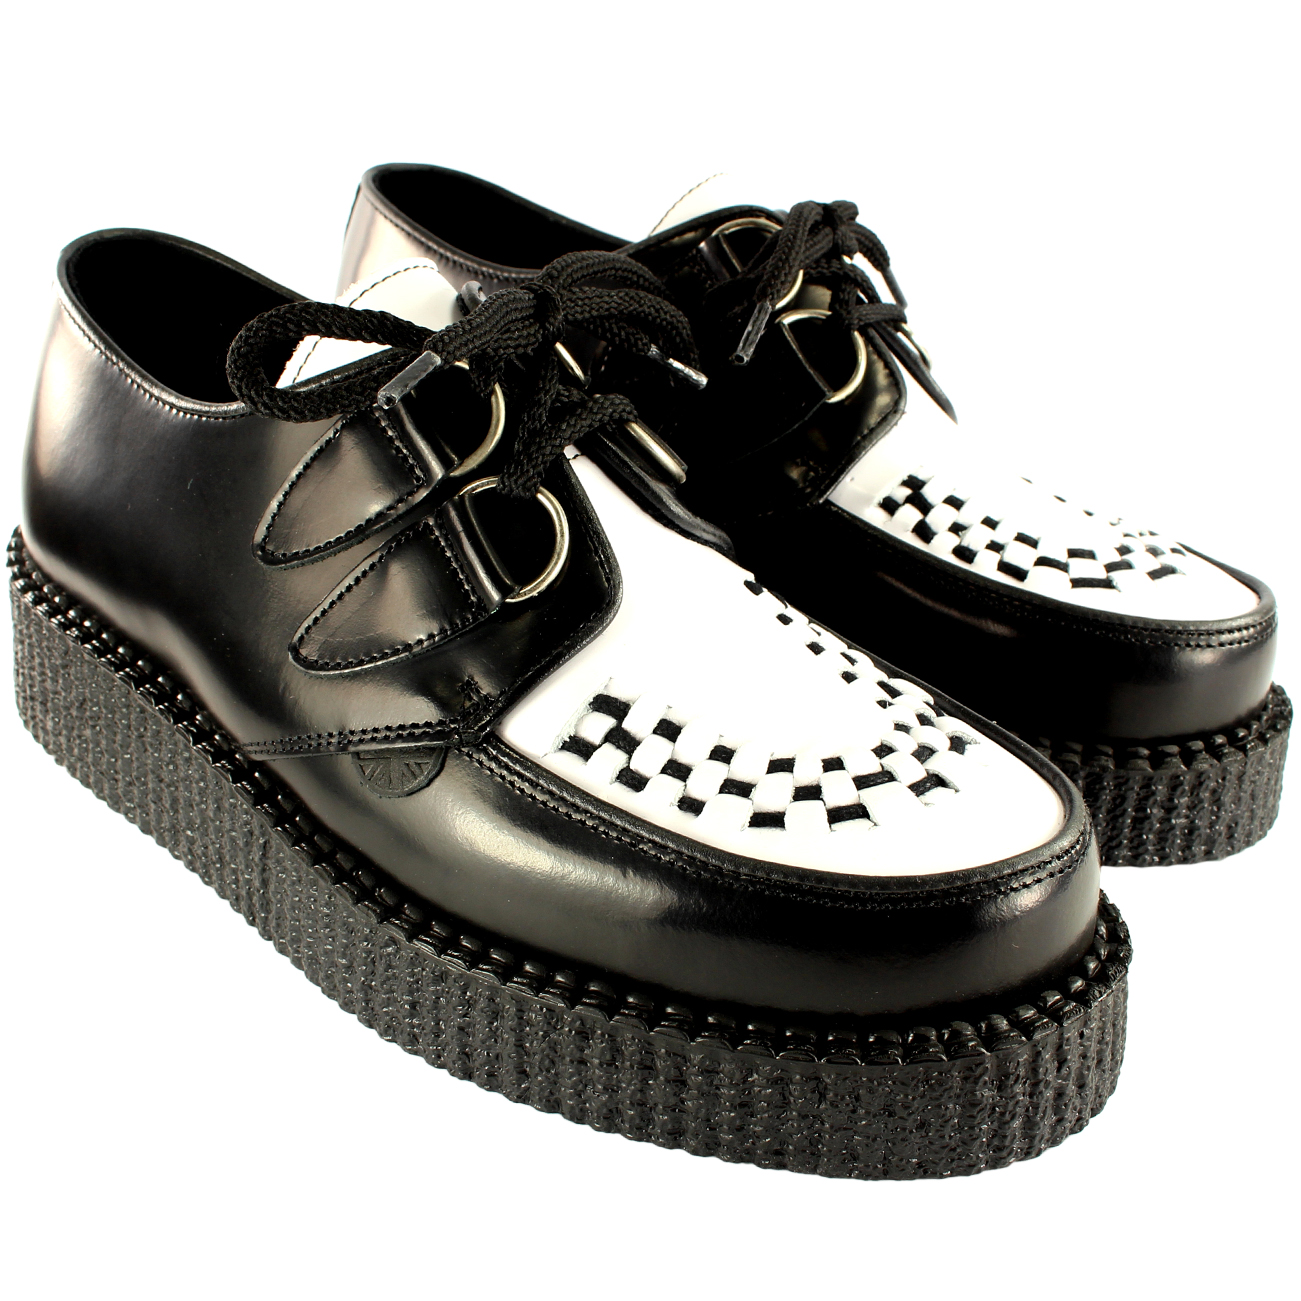 Underground Creepers Leather Punk Shoes